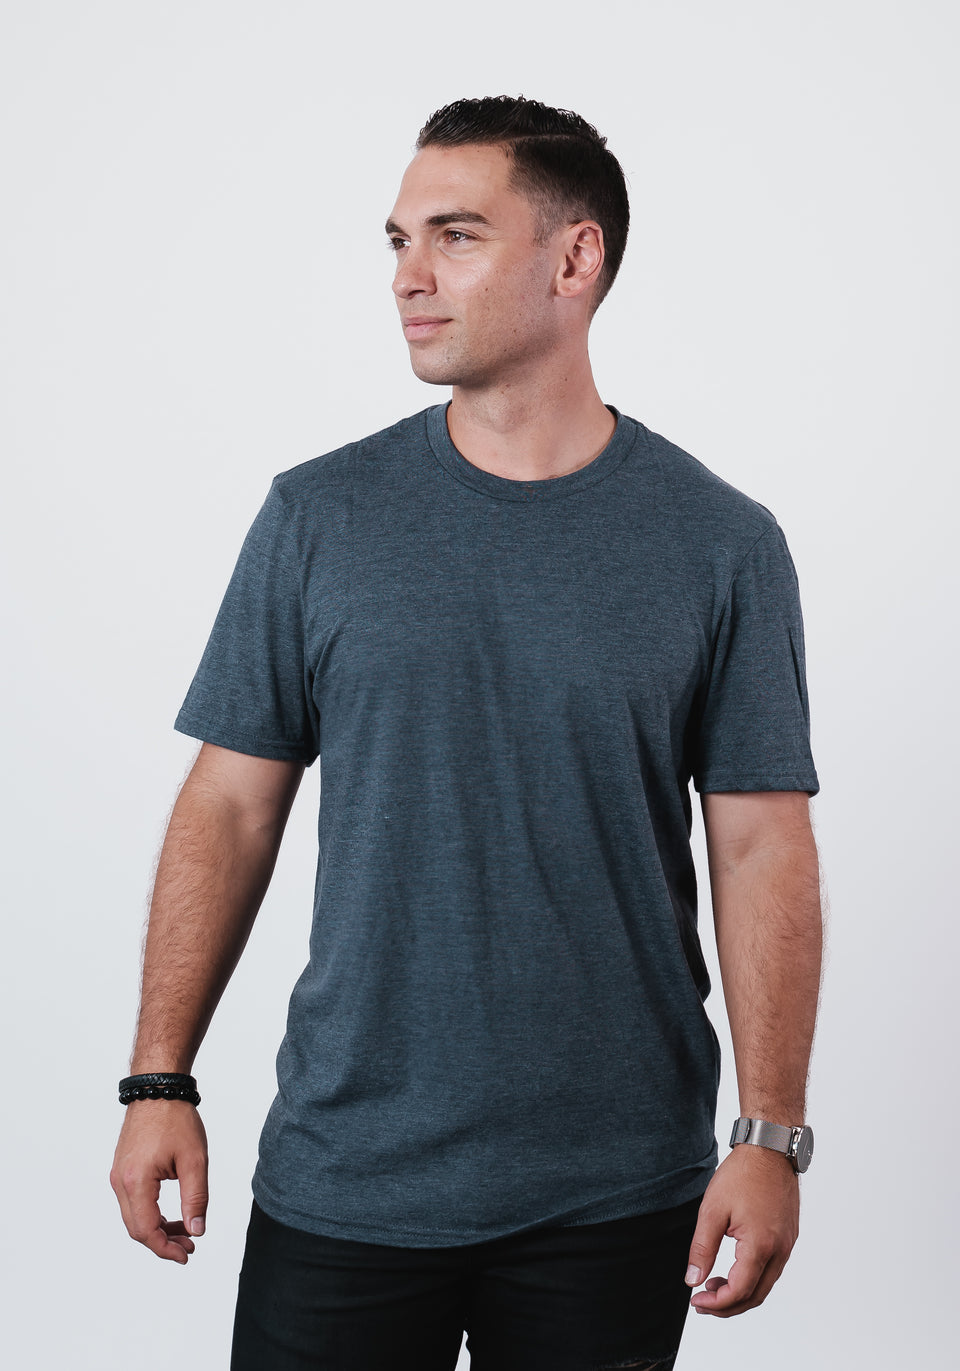 Men's Heathered Navy Soft Crew Neck T Shirt